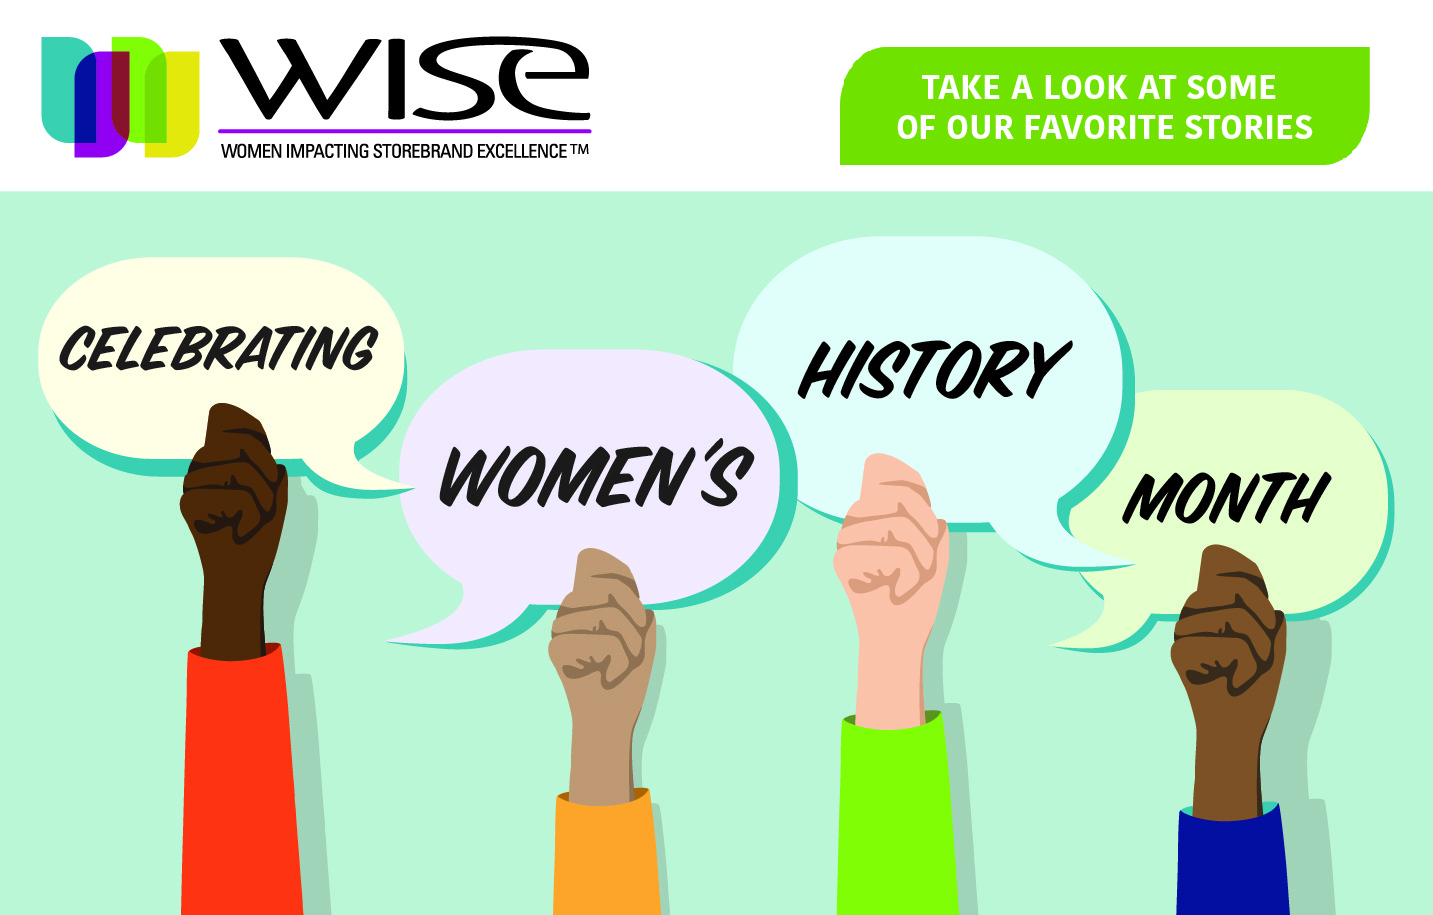 WISE-080 Women's History Month Web Graphic 0315